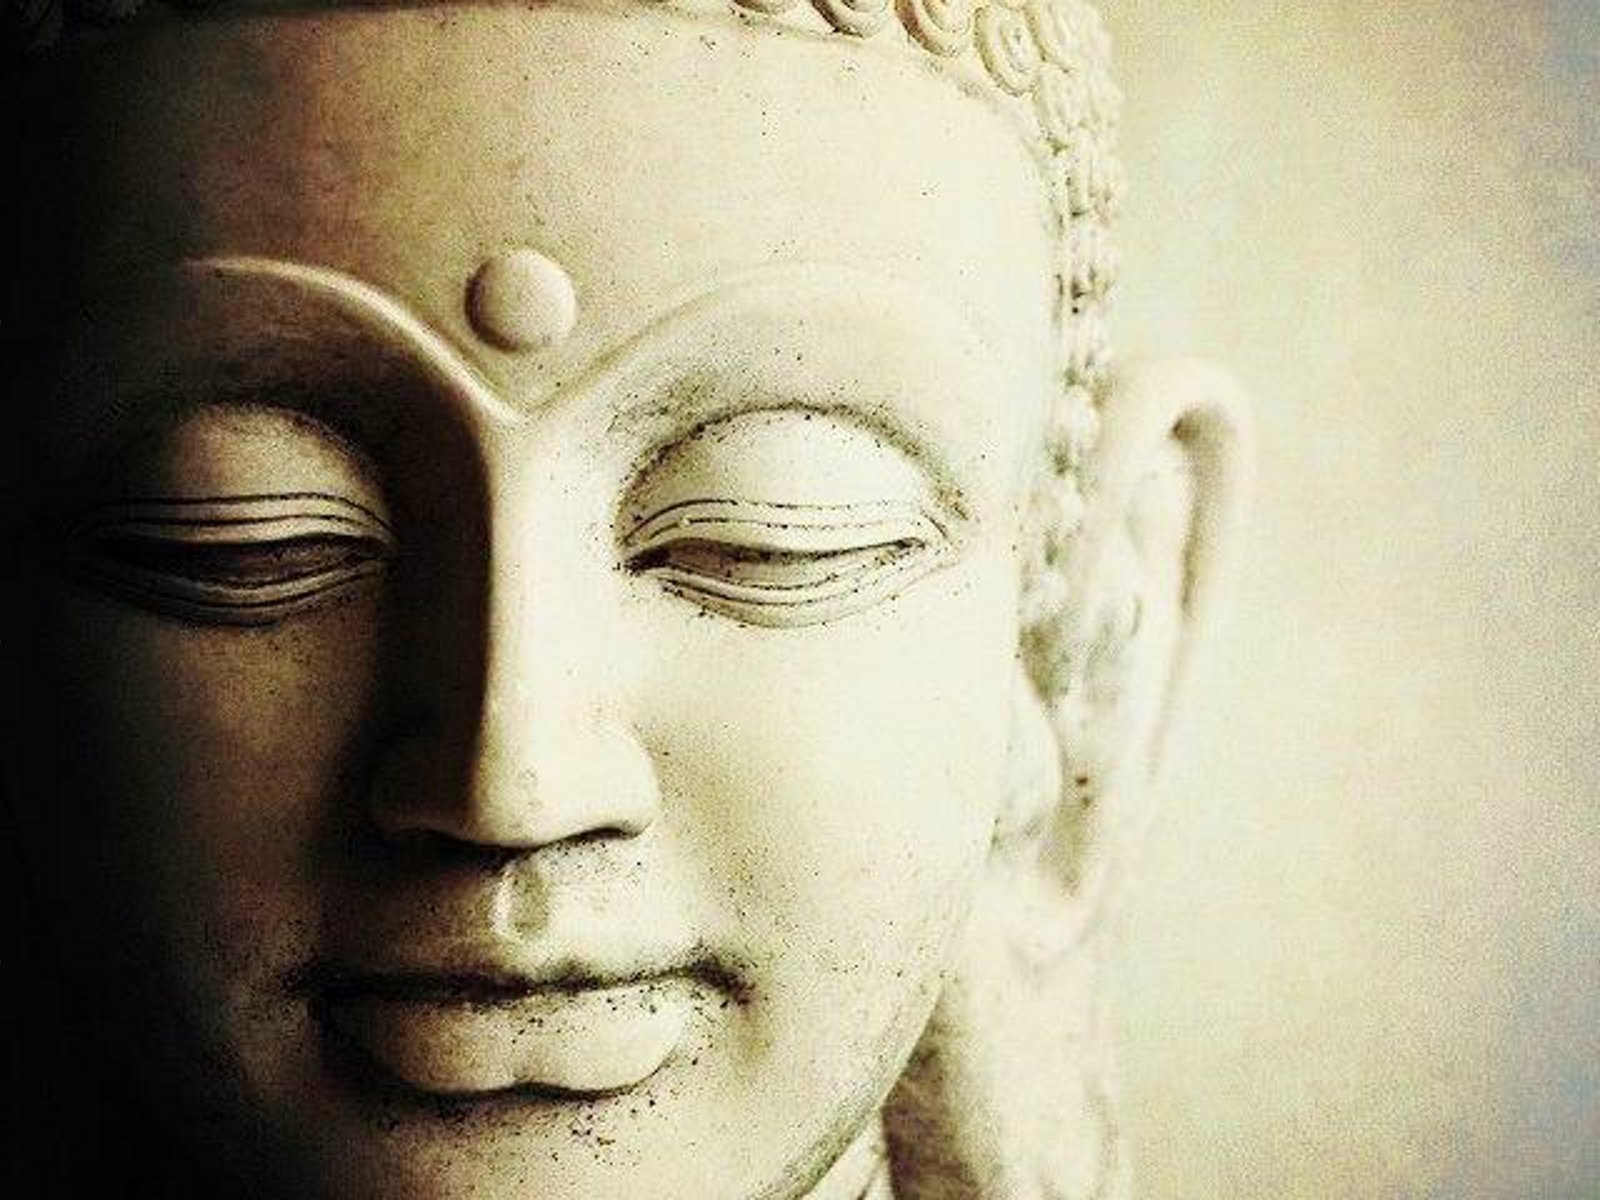 Buddha face wallpaper